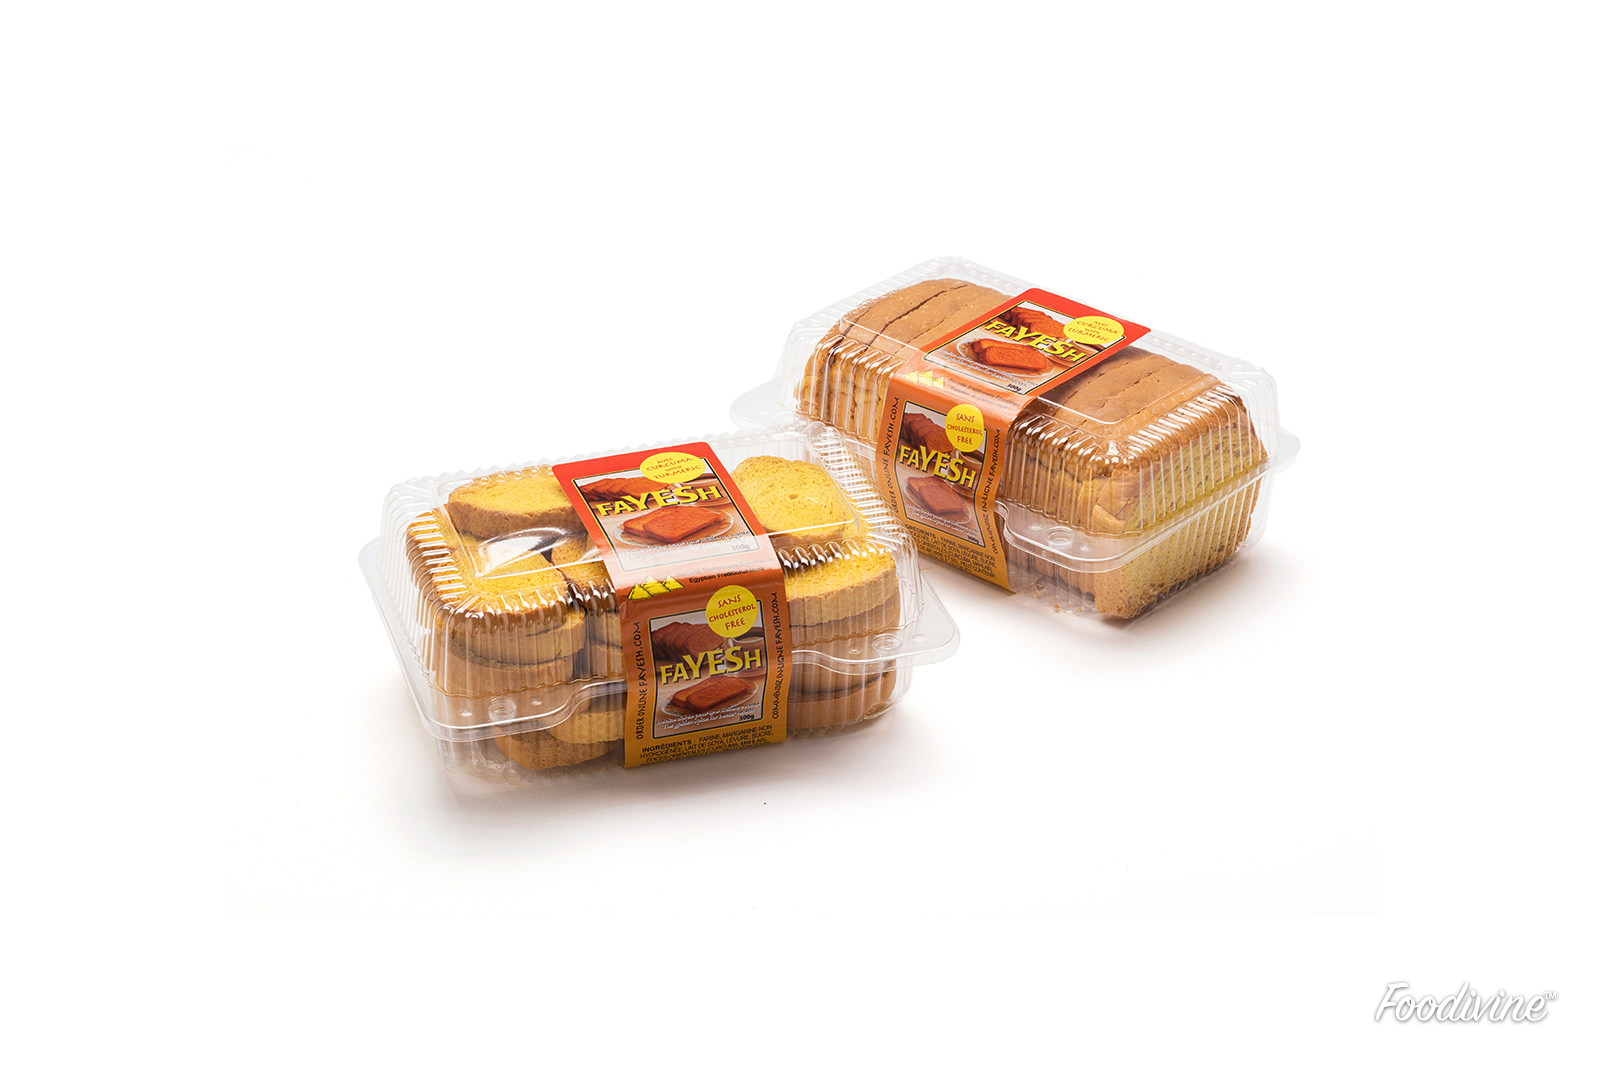 Bread and Toast Product Photo on White